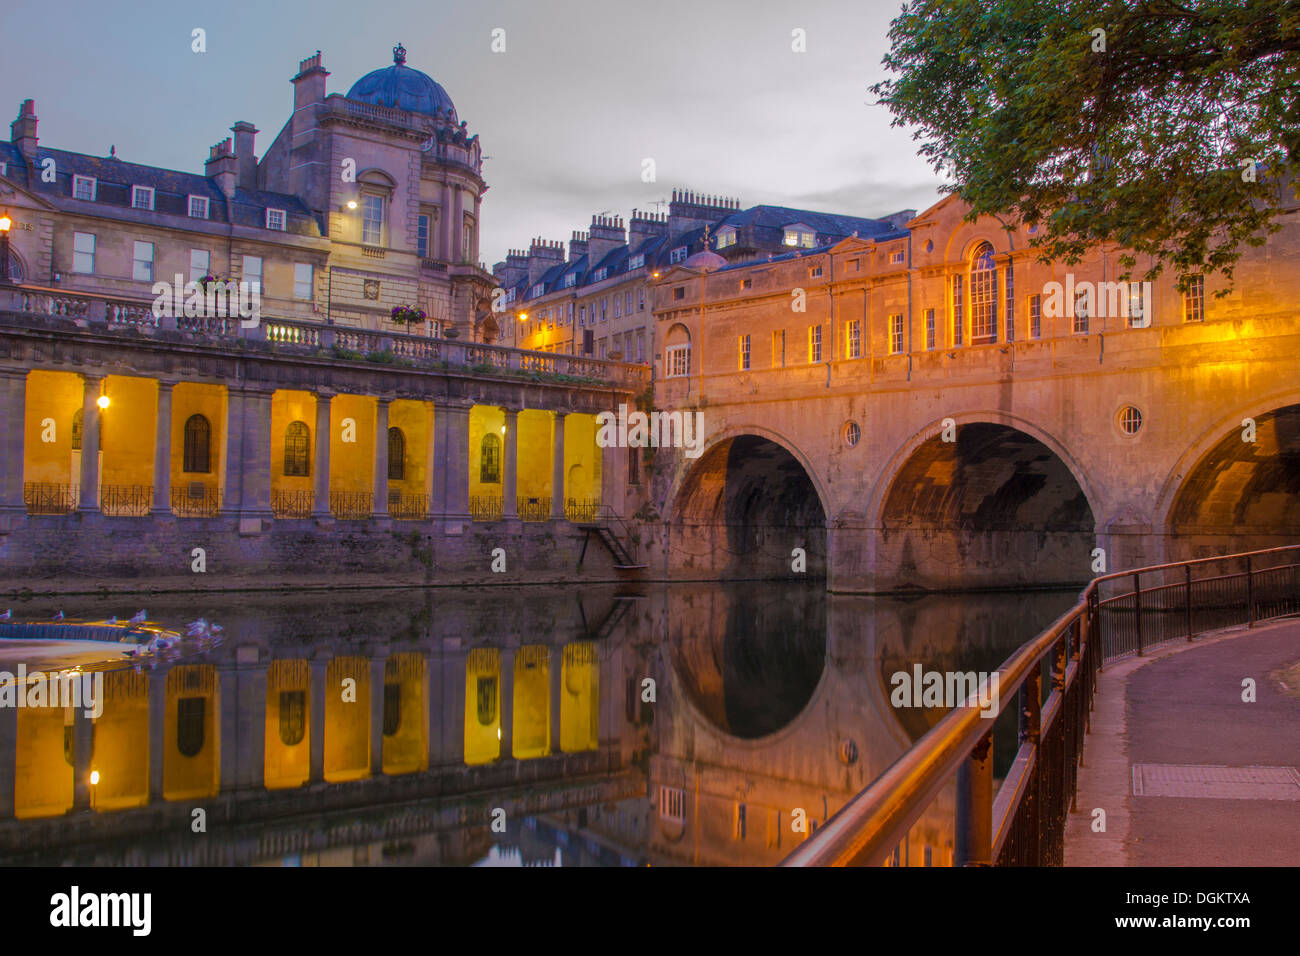 A view of Pulteney bridge over the River Avon at dusk. - Stock Image